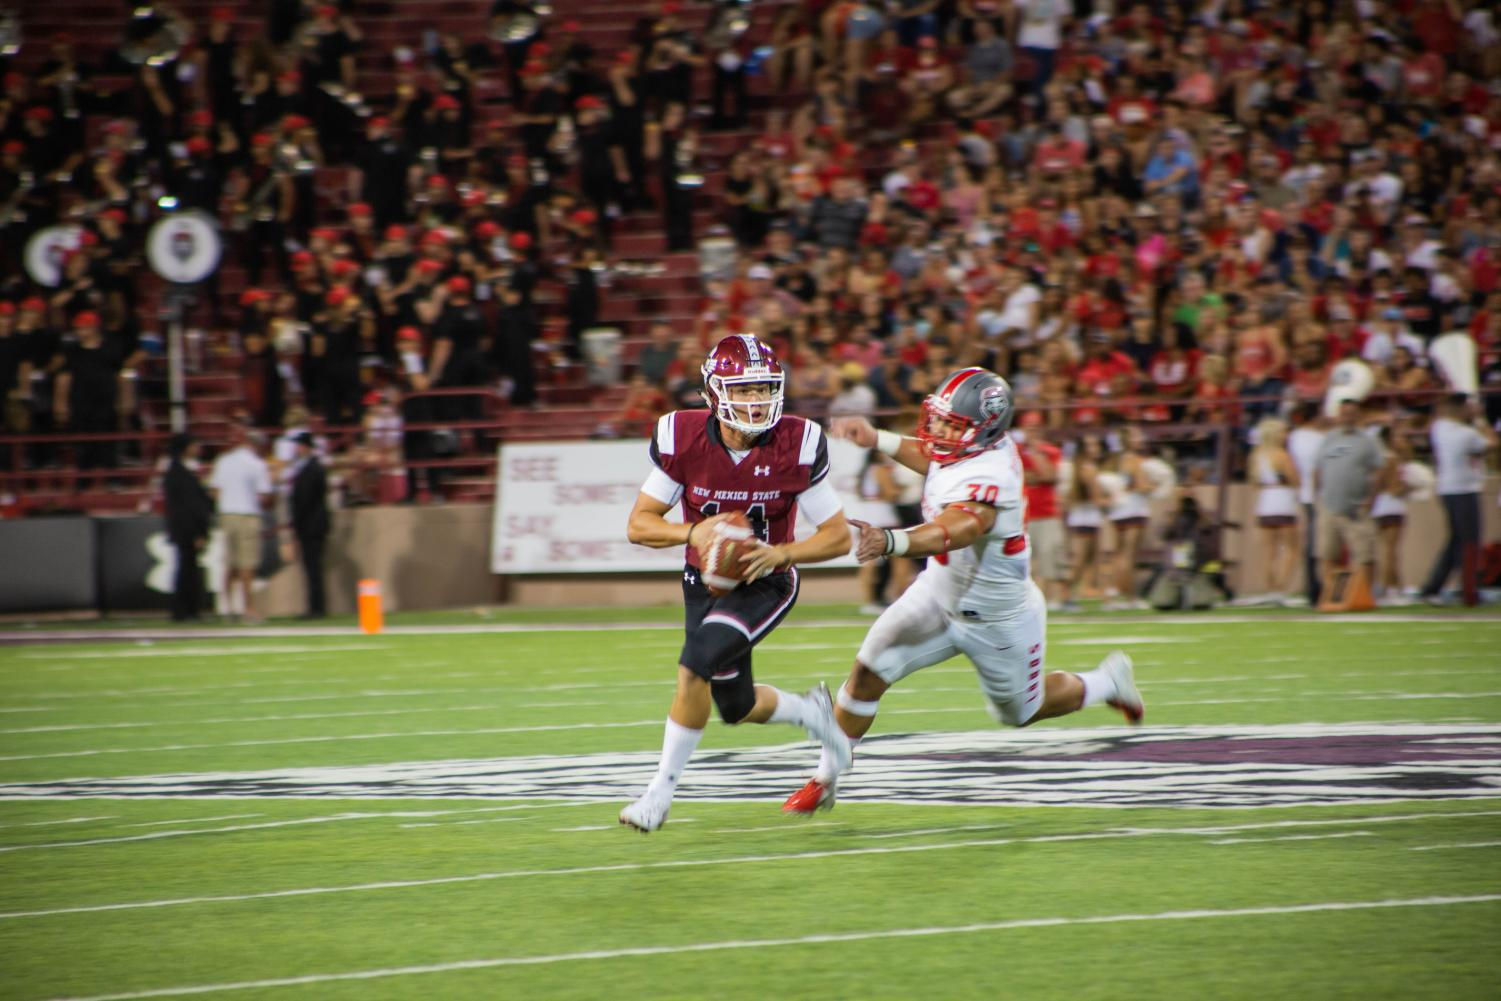 A bye week could help QB Josh Adkins improve by the time NMSU faces Liberty for Homecoming.